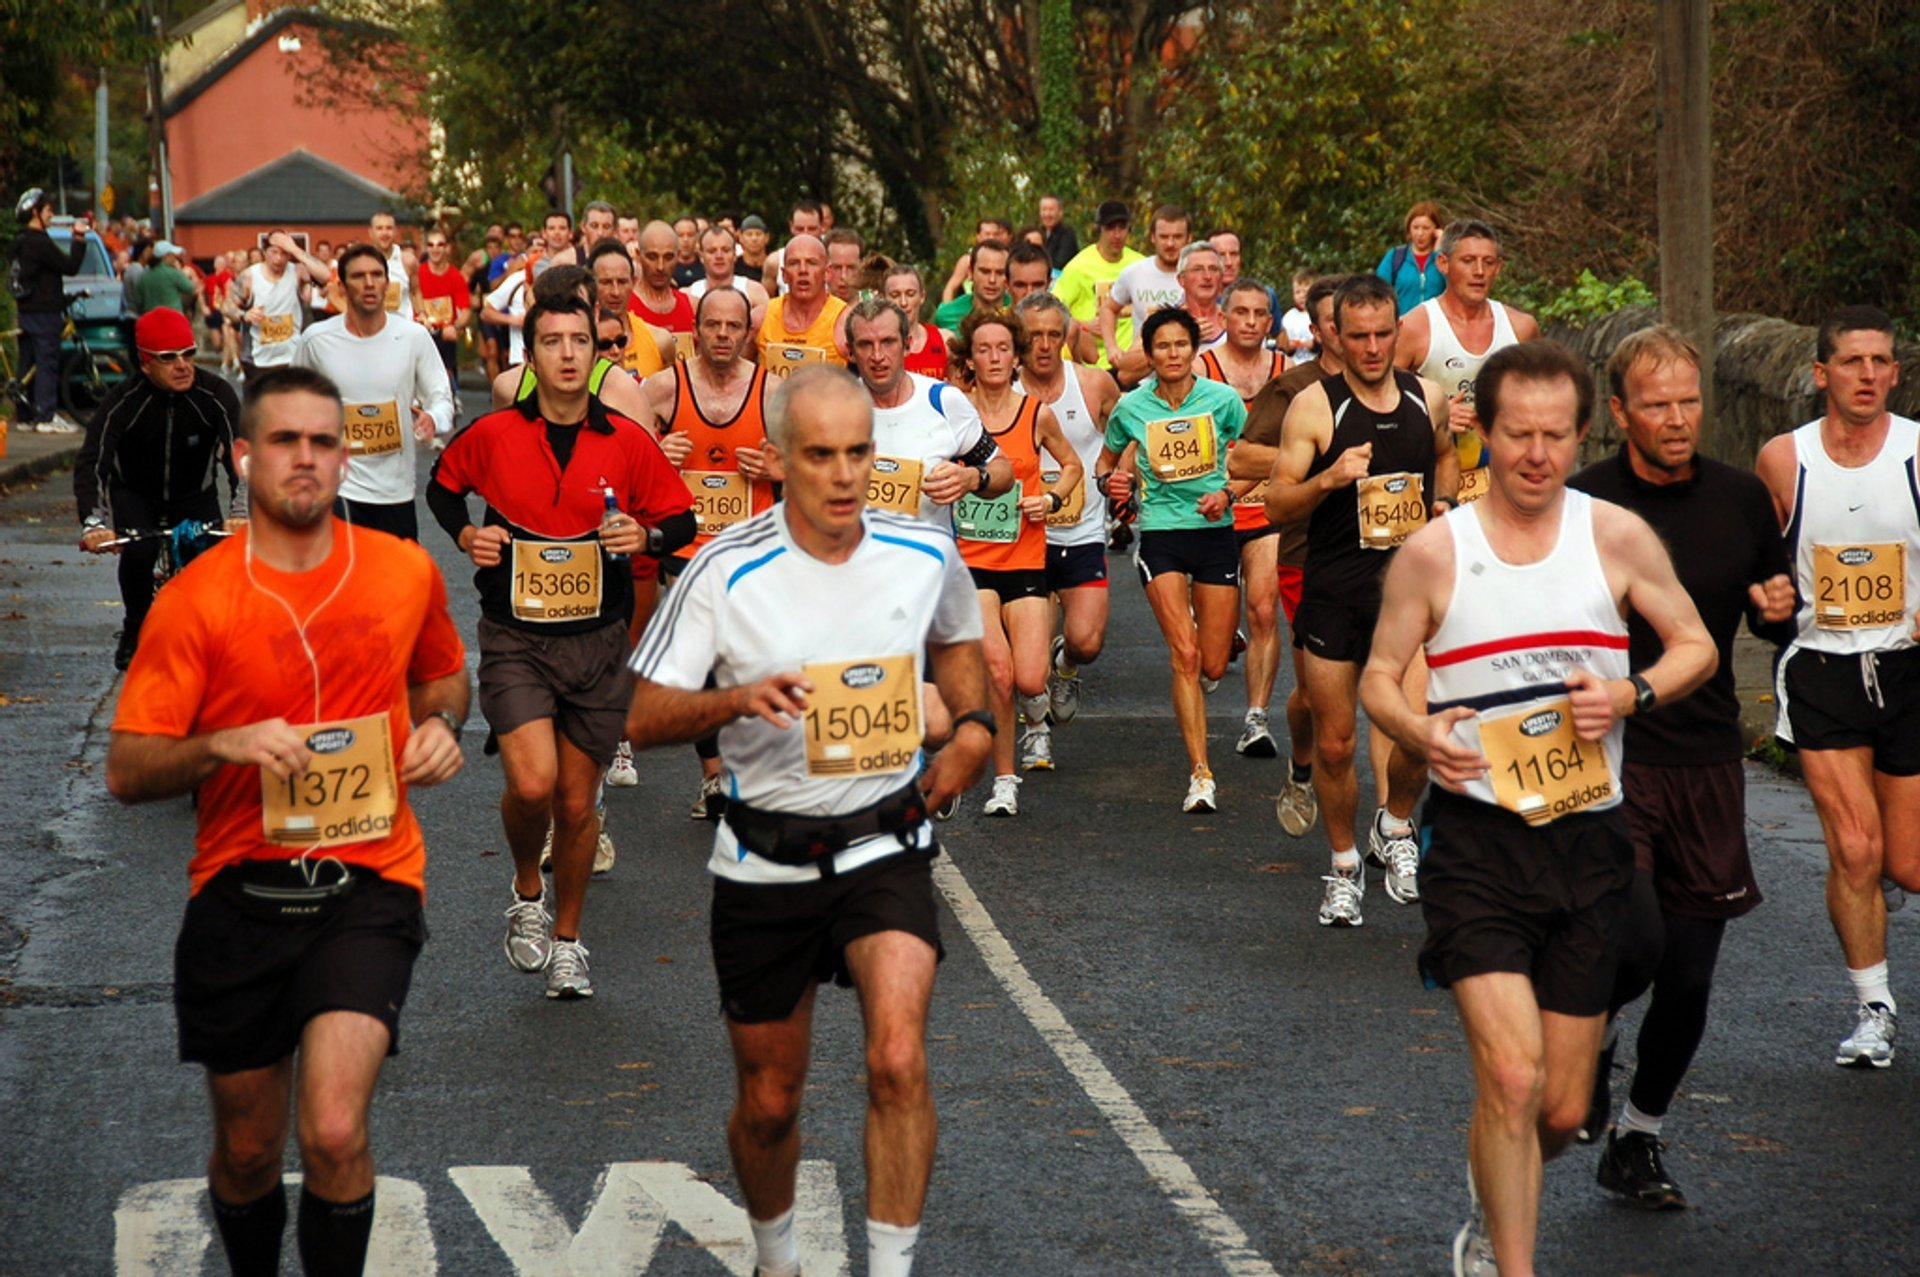 KBC Dublin Marathon in Dublin 2020 - Best Time